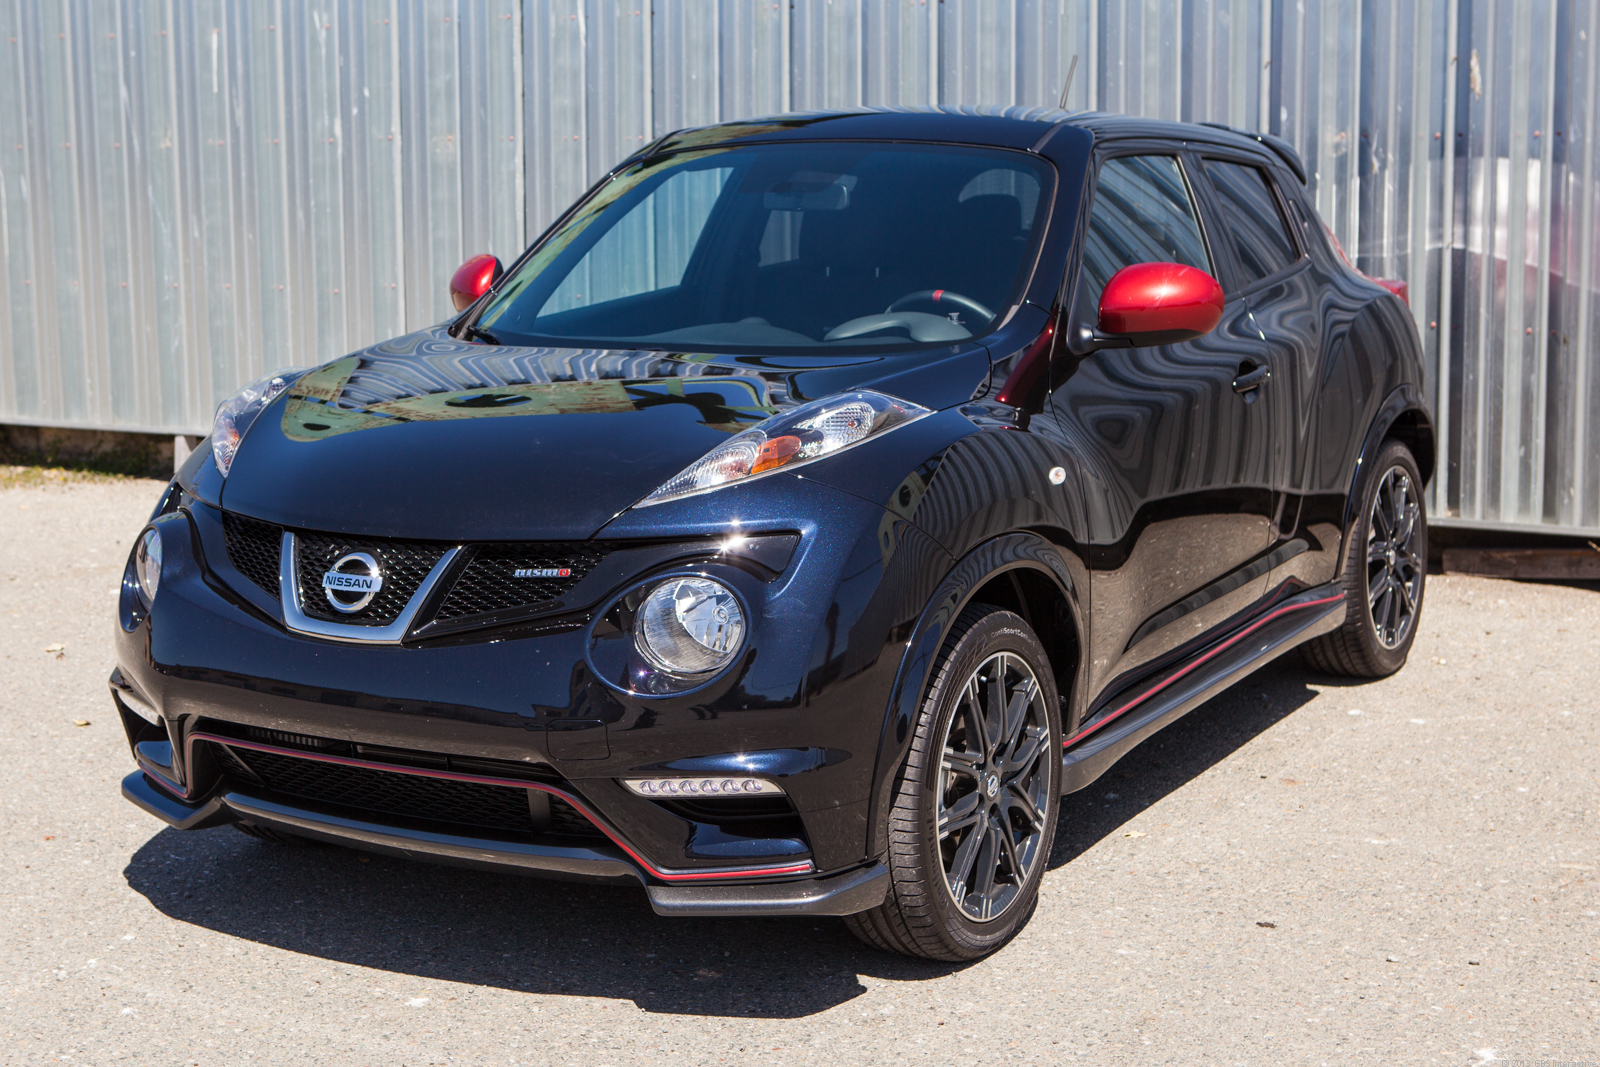 2013 nissan juke nismo review cnet. Black Bedroom Furniture Sets. Home Design Ideas